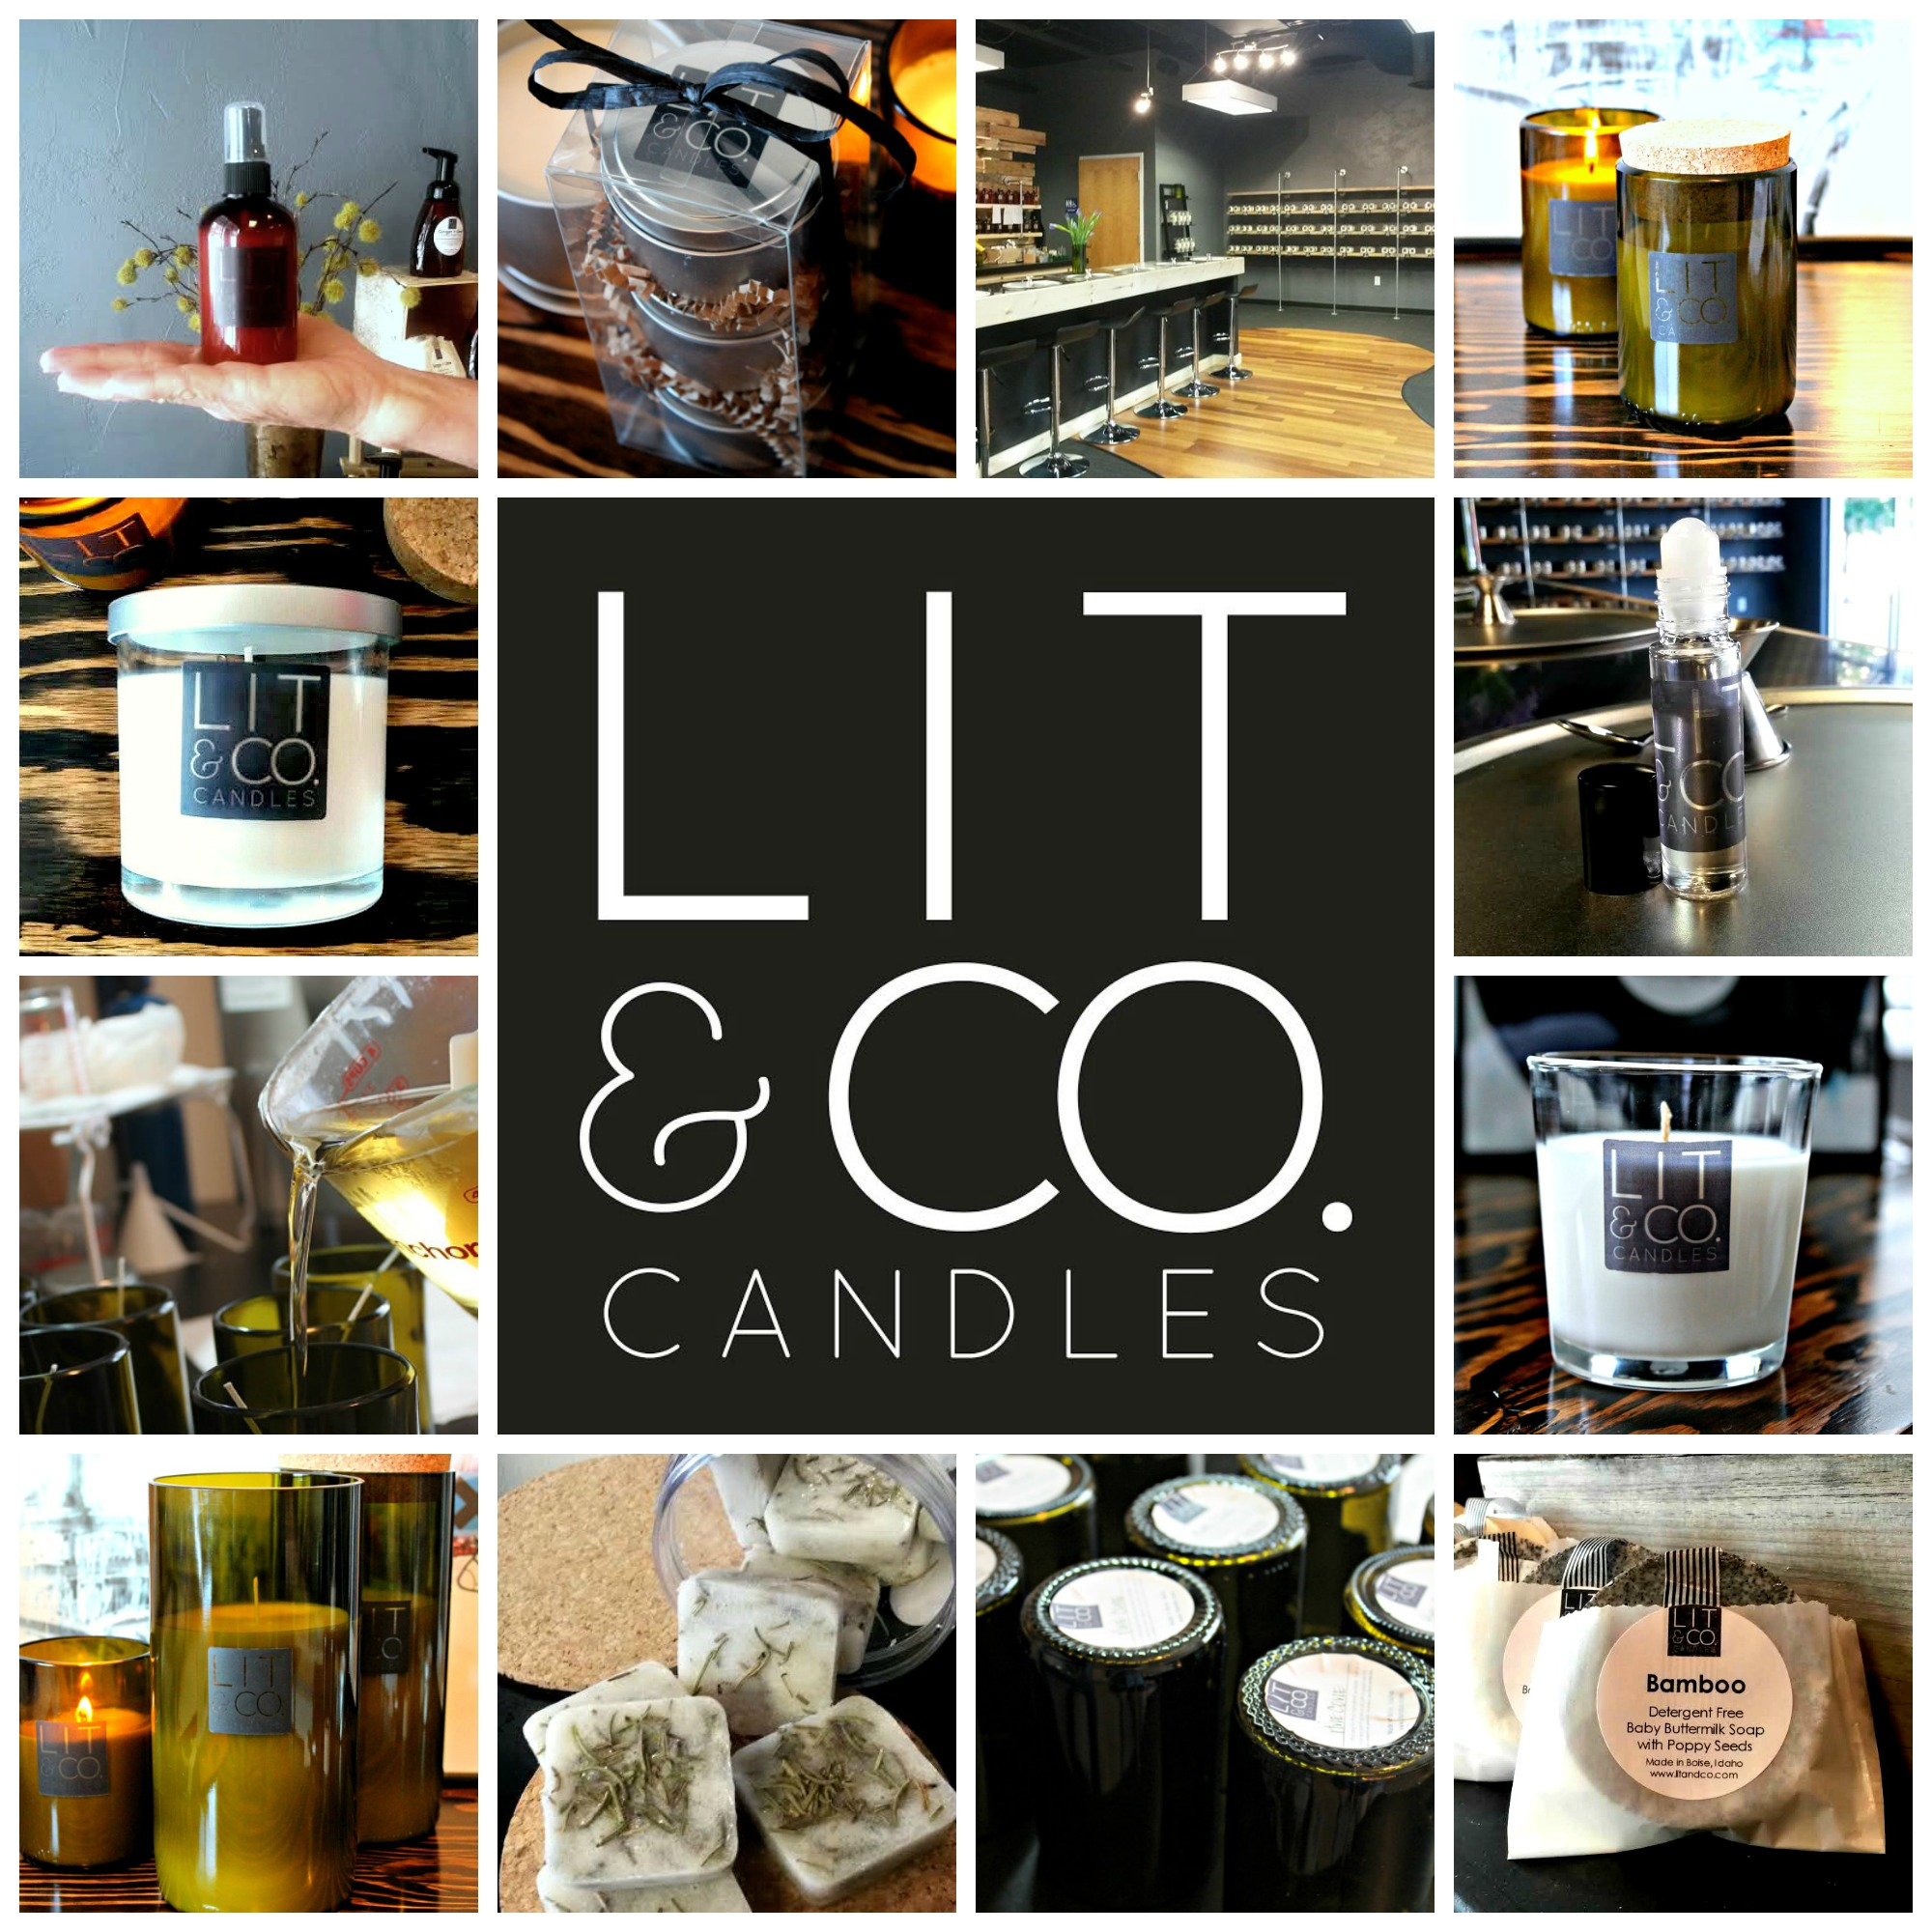 Bezed Lit Upscale Travel Candles From Boise Based Lit And Co Part Of